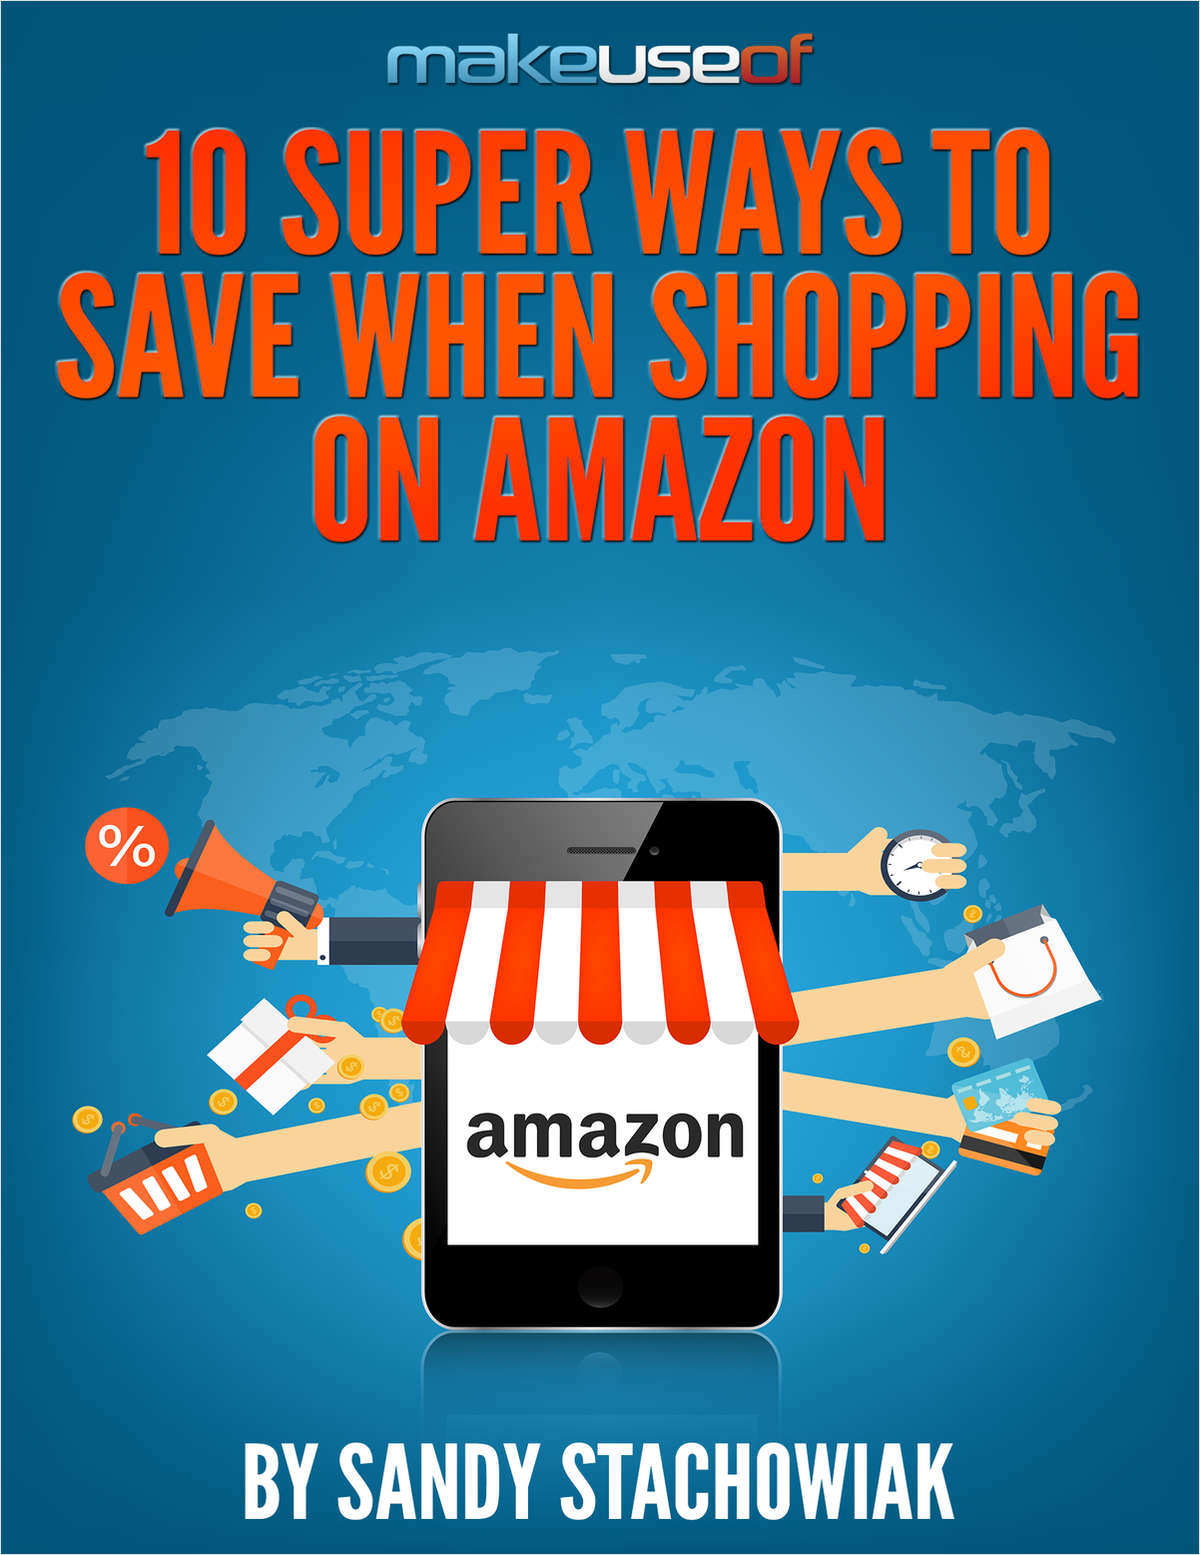 10 Super Ways to Save When Shopping on Amazon